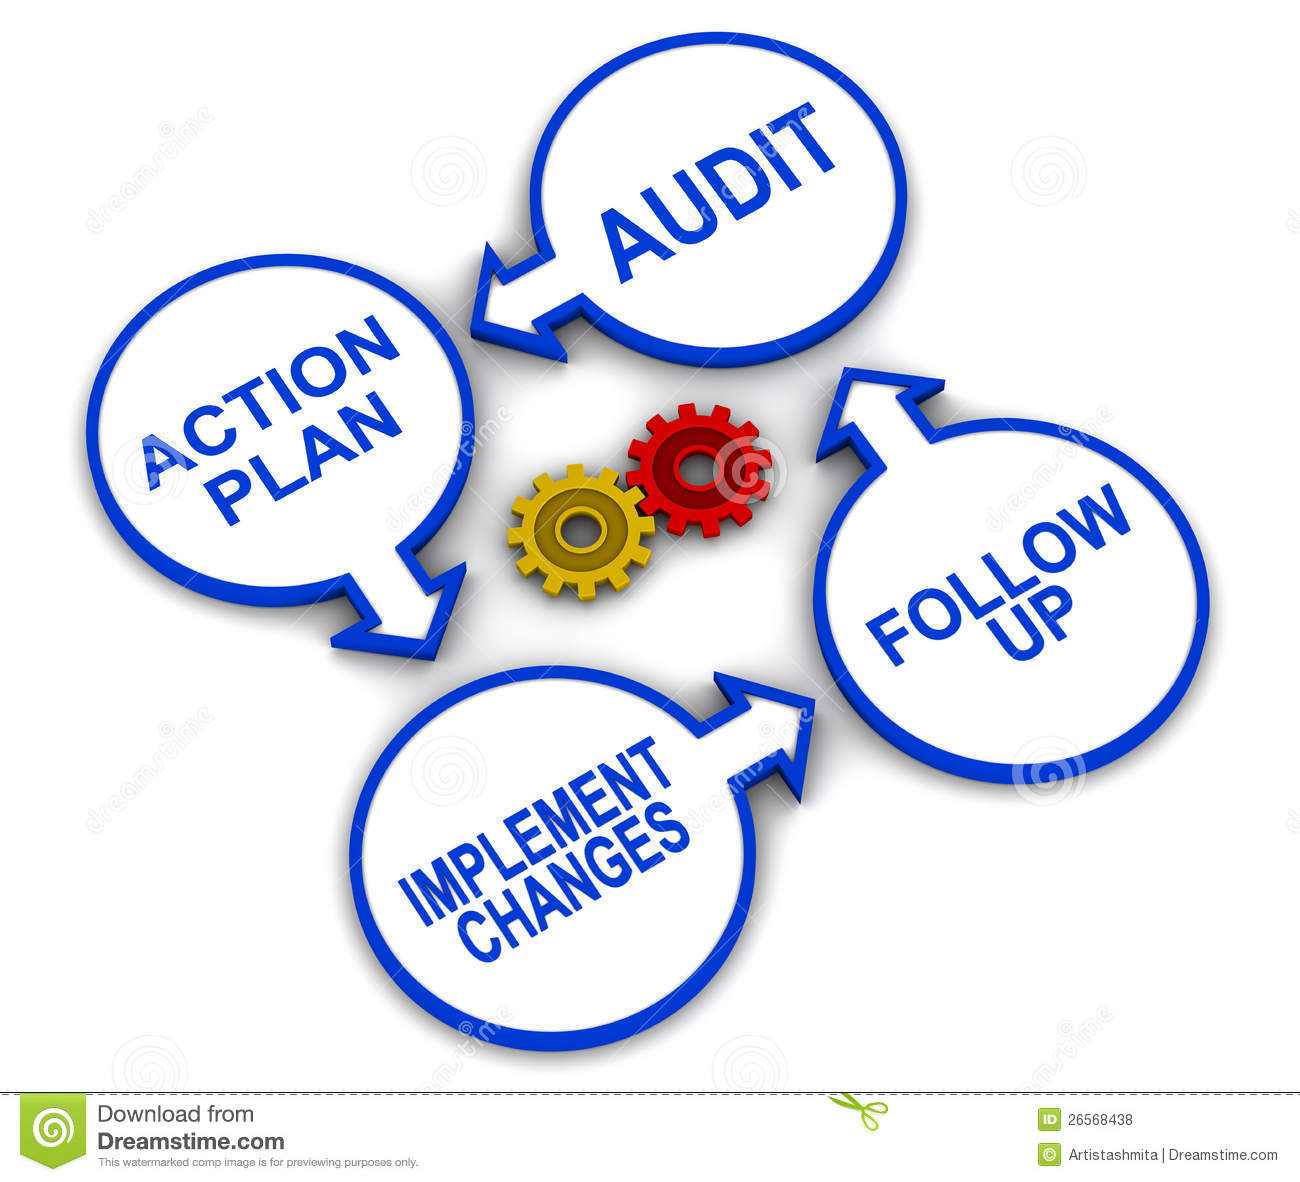 the audit 2015-03-30 provide for an annual audit of the cooperative's accounting records they are: 1 to prevent deliberate misstatement offact misstatement of fact may occur for many reasons, such as to hide poor deci-sions or to cover fraud.